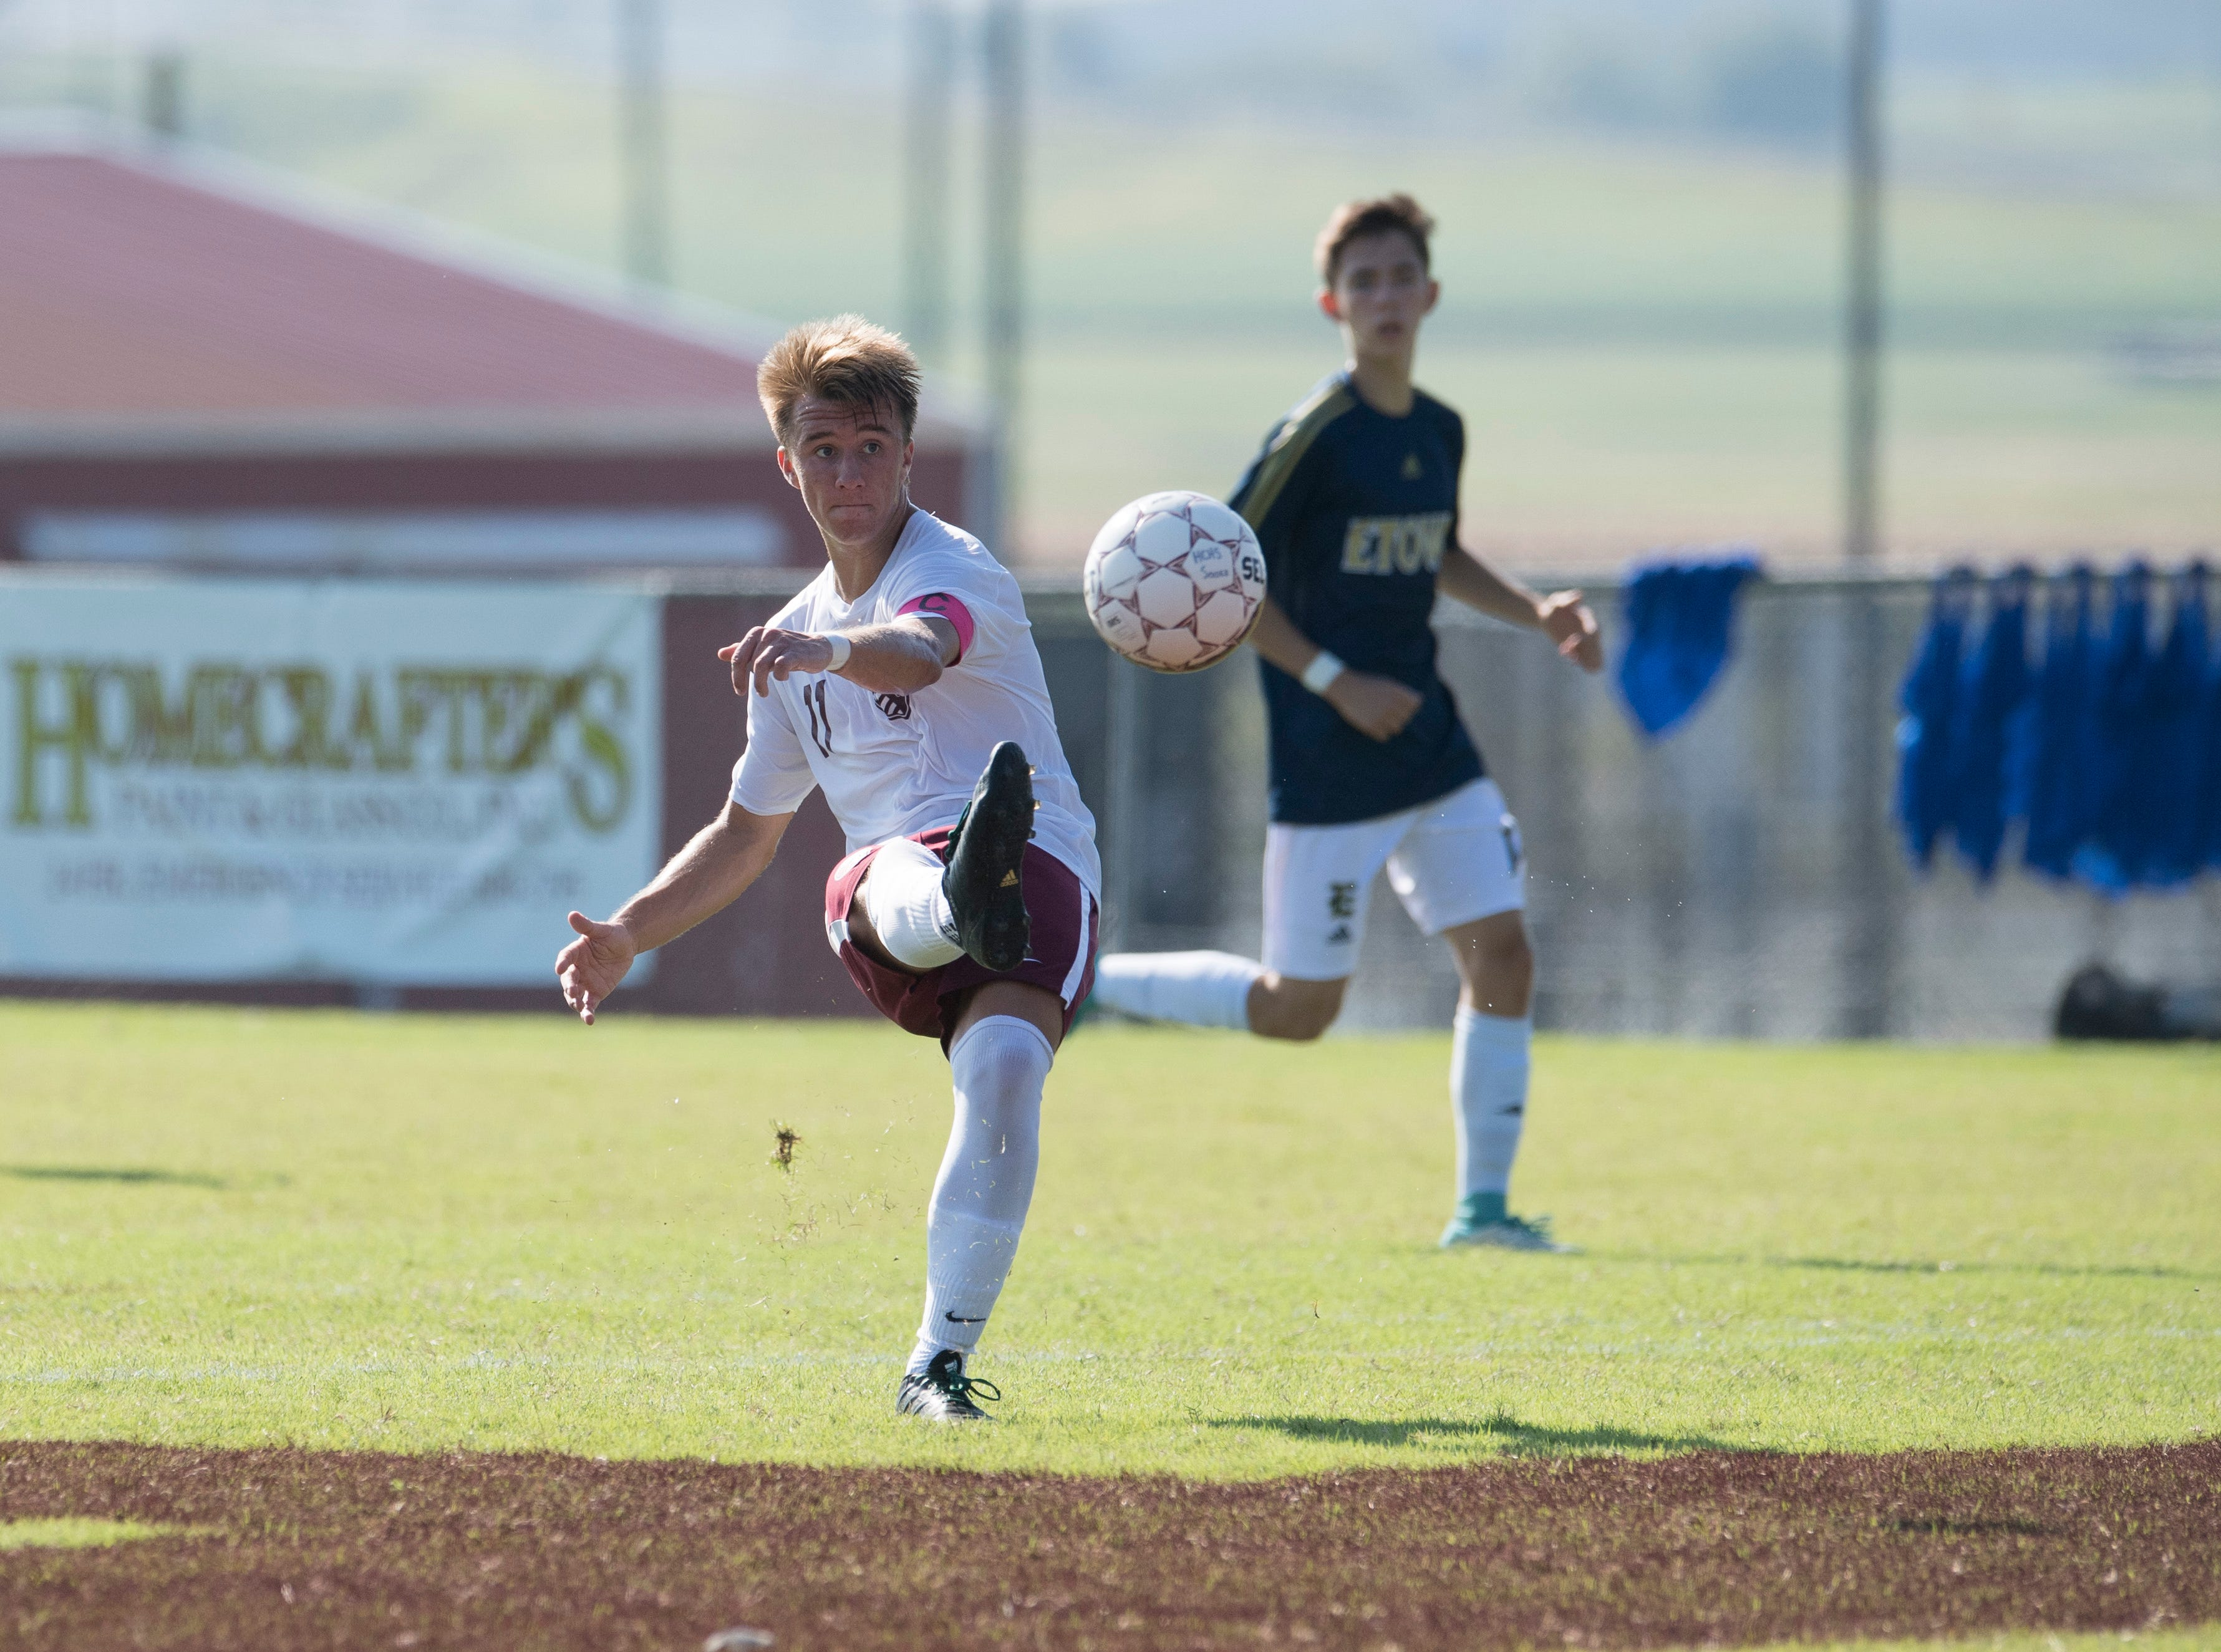 Henderson County's Max Wawrin (11) kicks the ball downfield during the first half against the Elizabethtown Panthers at Colonel Field in Henderson, Ky., Saturday, Sept. 15, 2018.